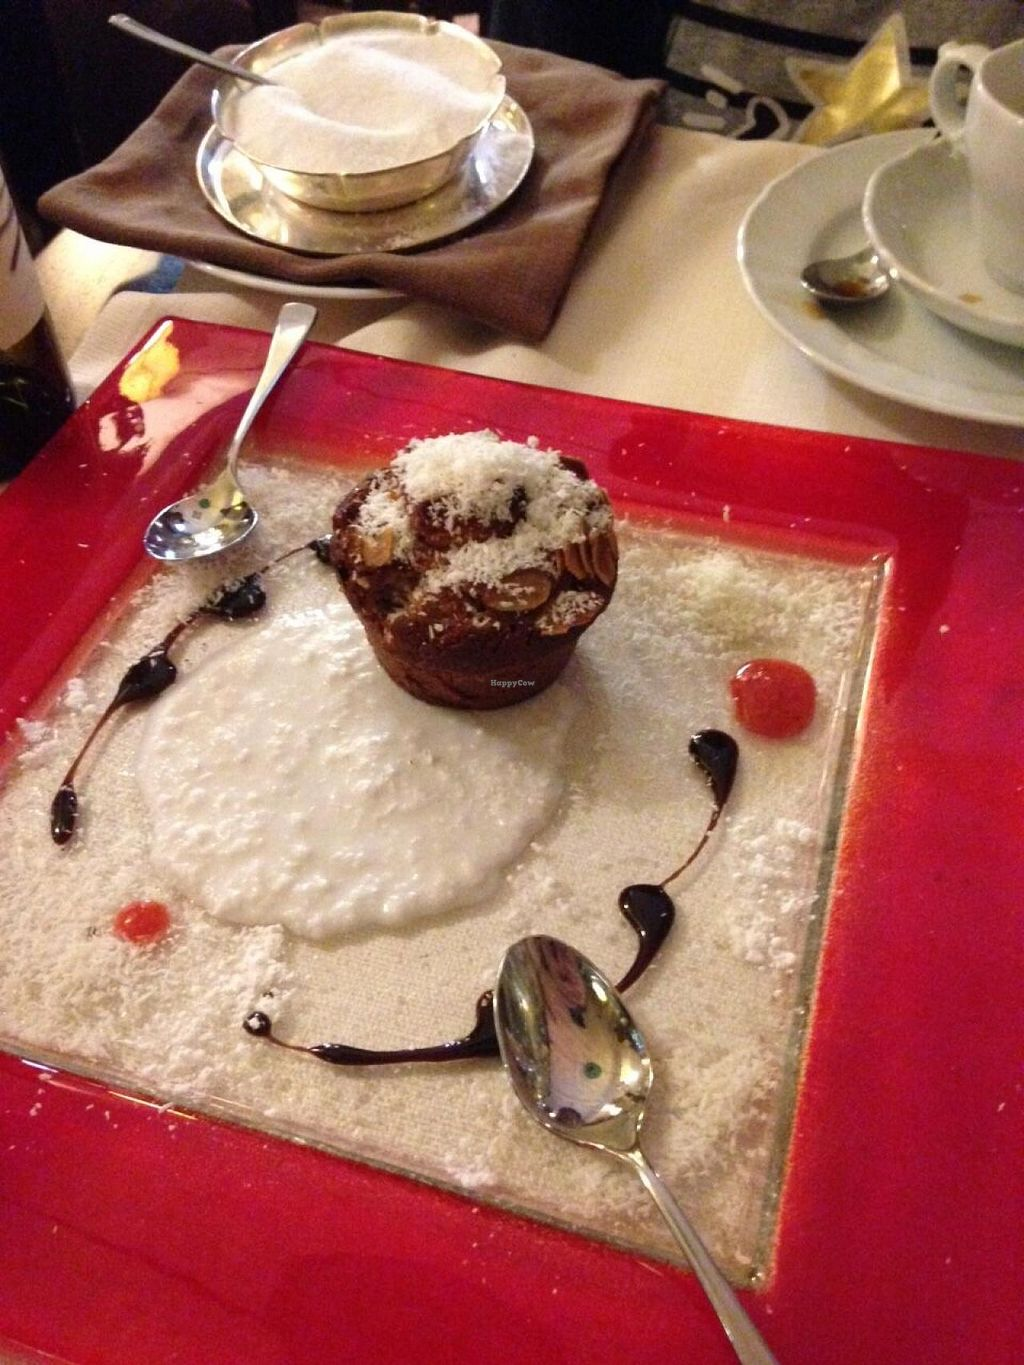 "Photo of Mario alla Fava  by <a href=""/members/profile/mc1481"">mc1481</a> <br/>Warm almond cake.  So good! <br/> May 19, 2015  - <a href='/contact/abuse/image/54087/102690'>Report</a>"